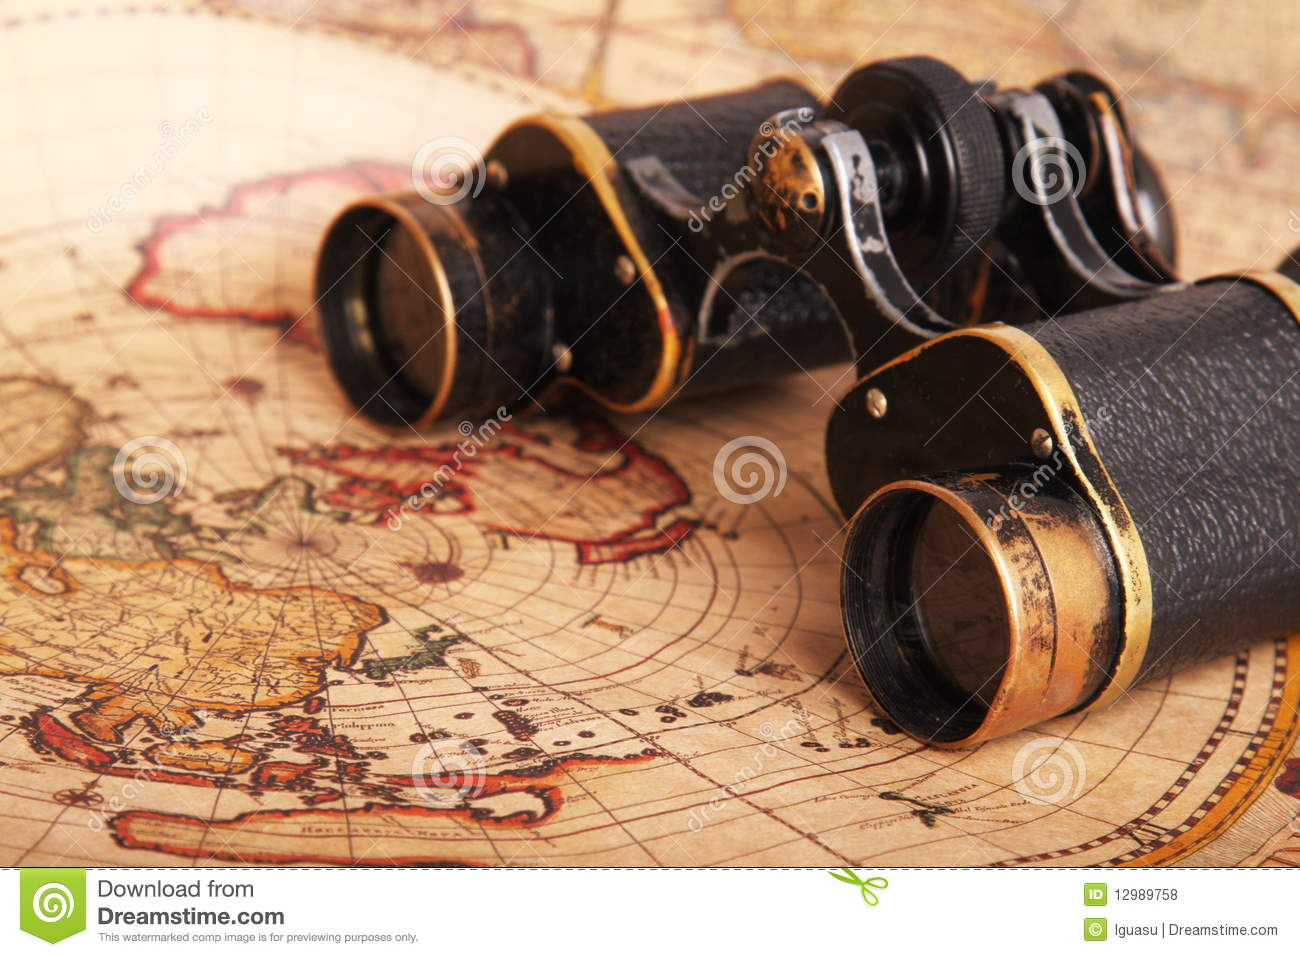 Old binoculars on antique map